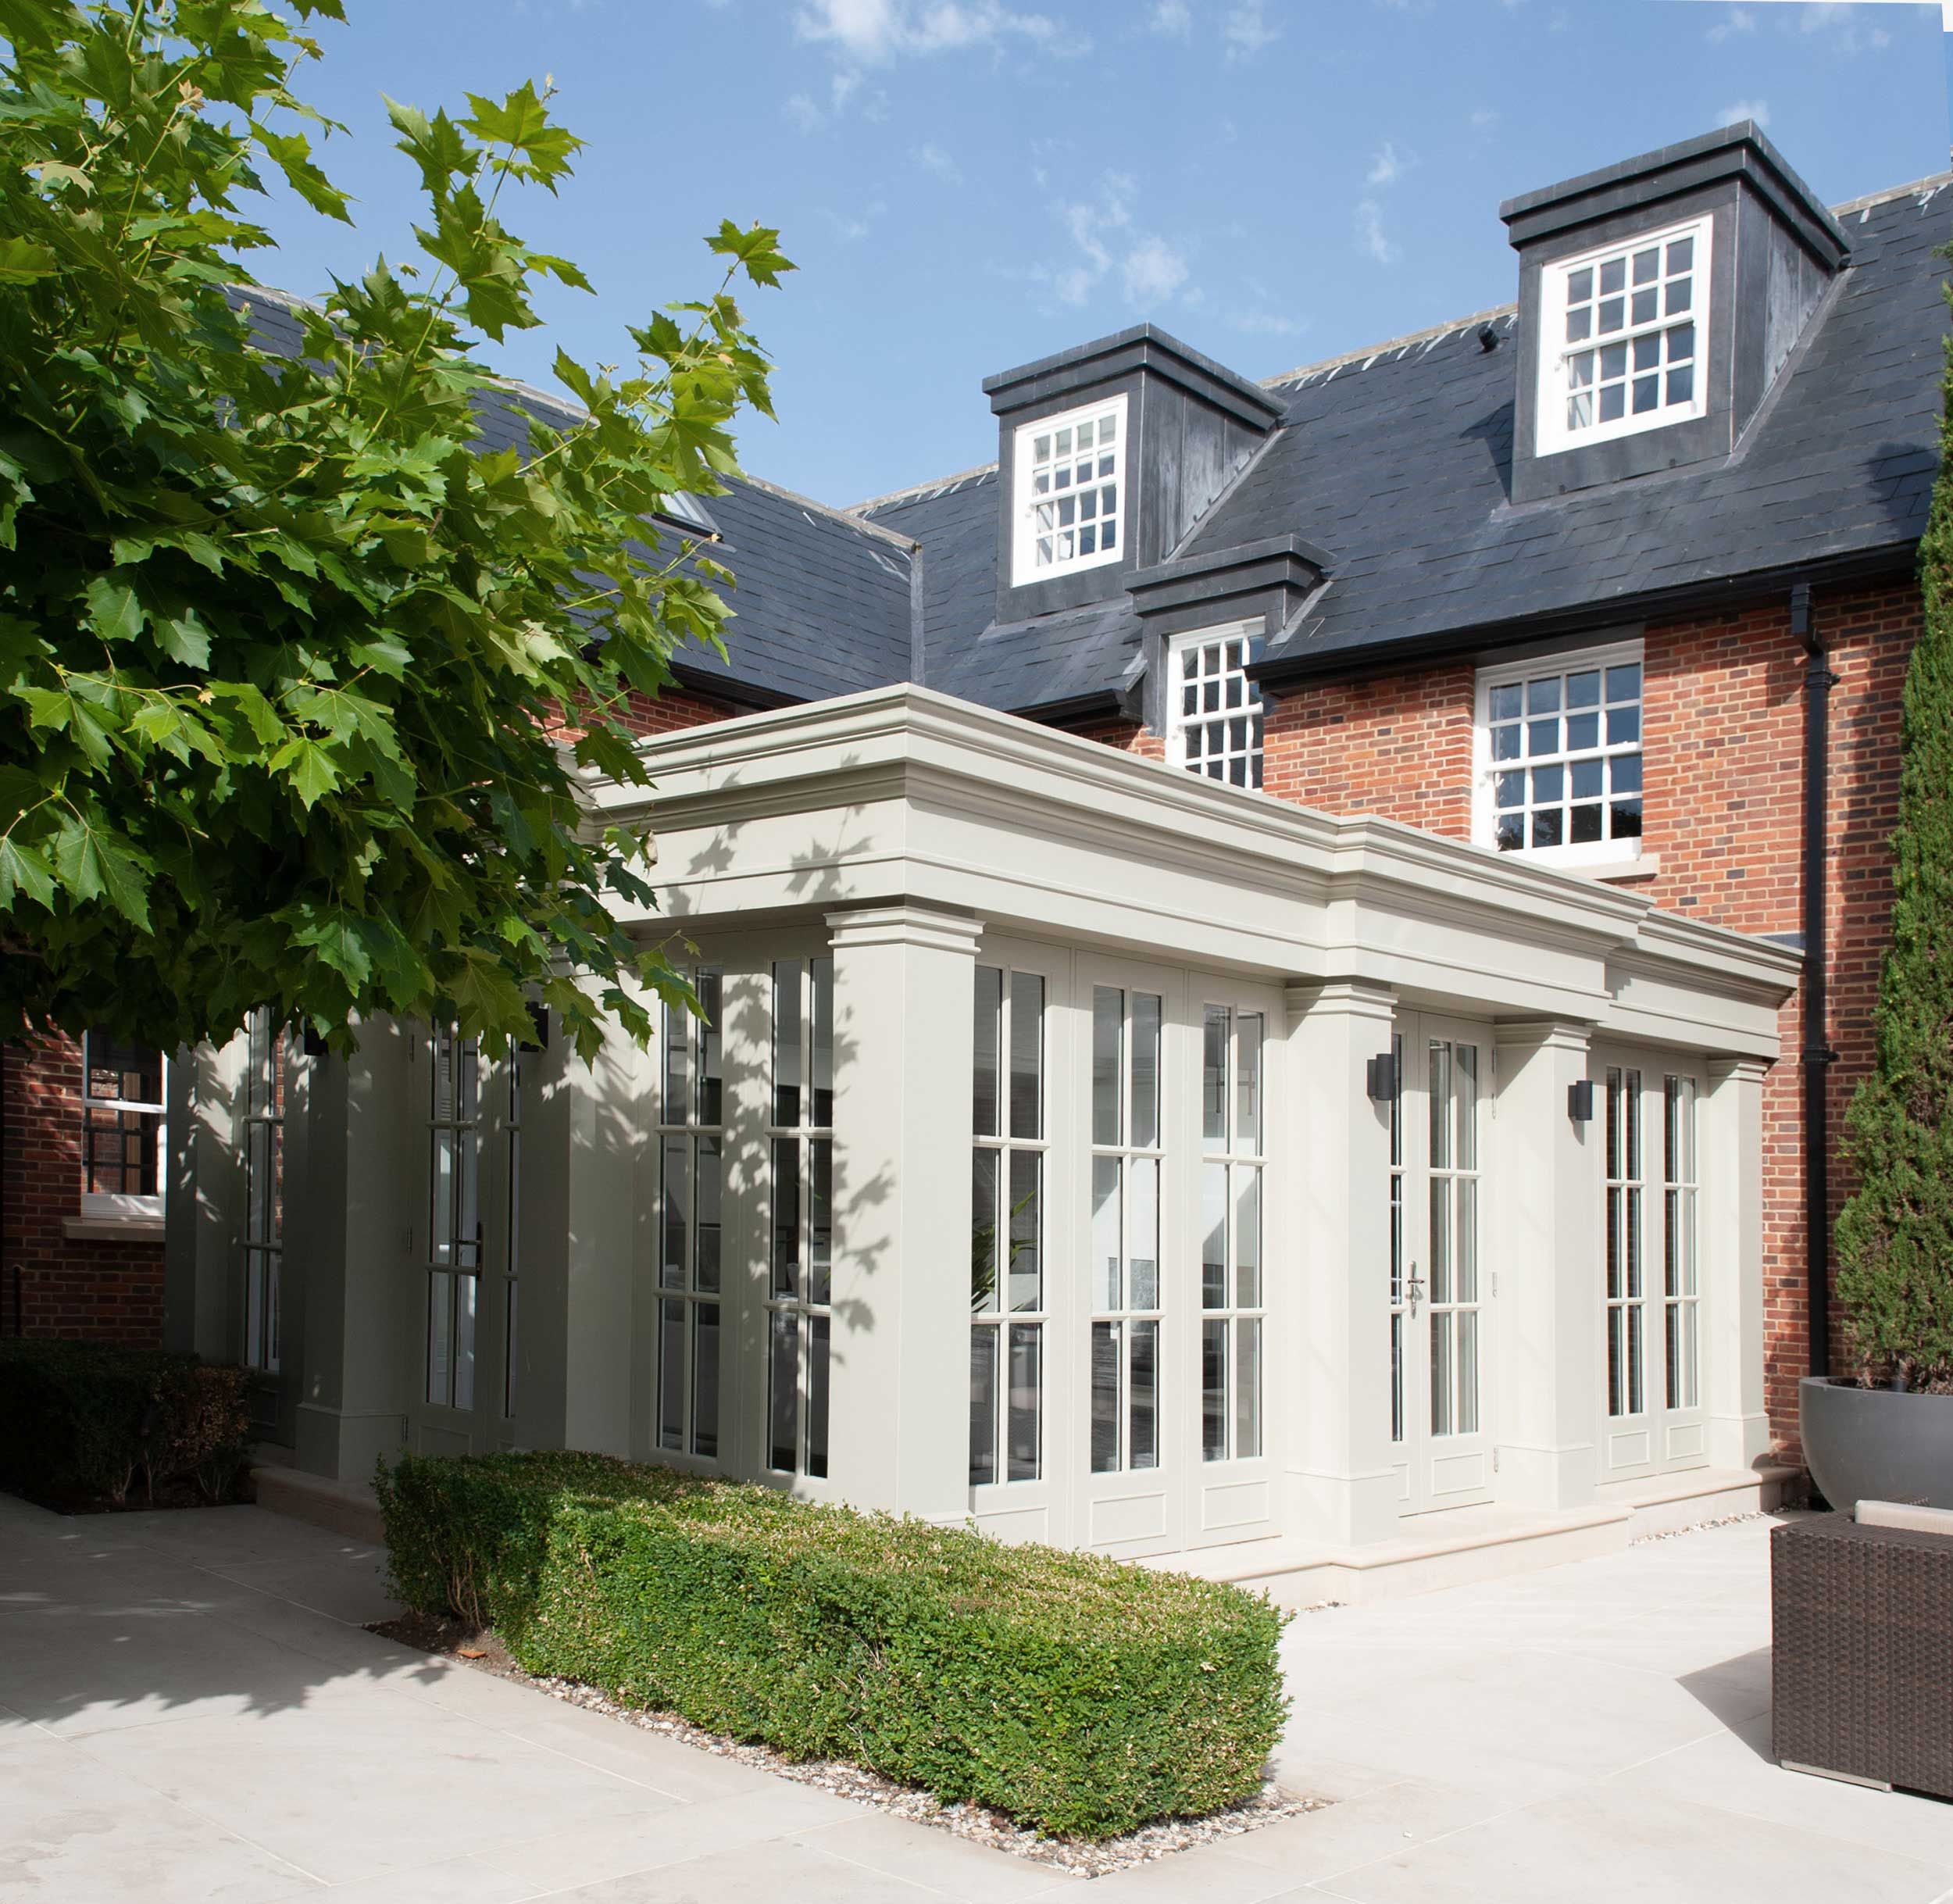 Berkshire - country house orangery bespoke traditional architecture